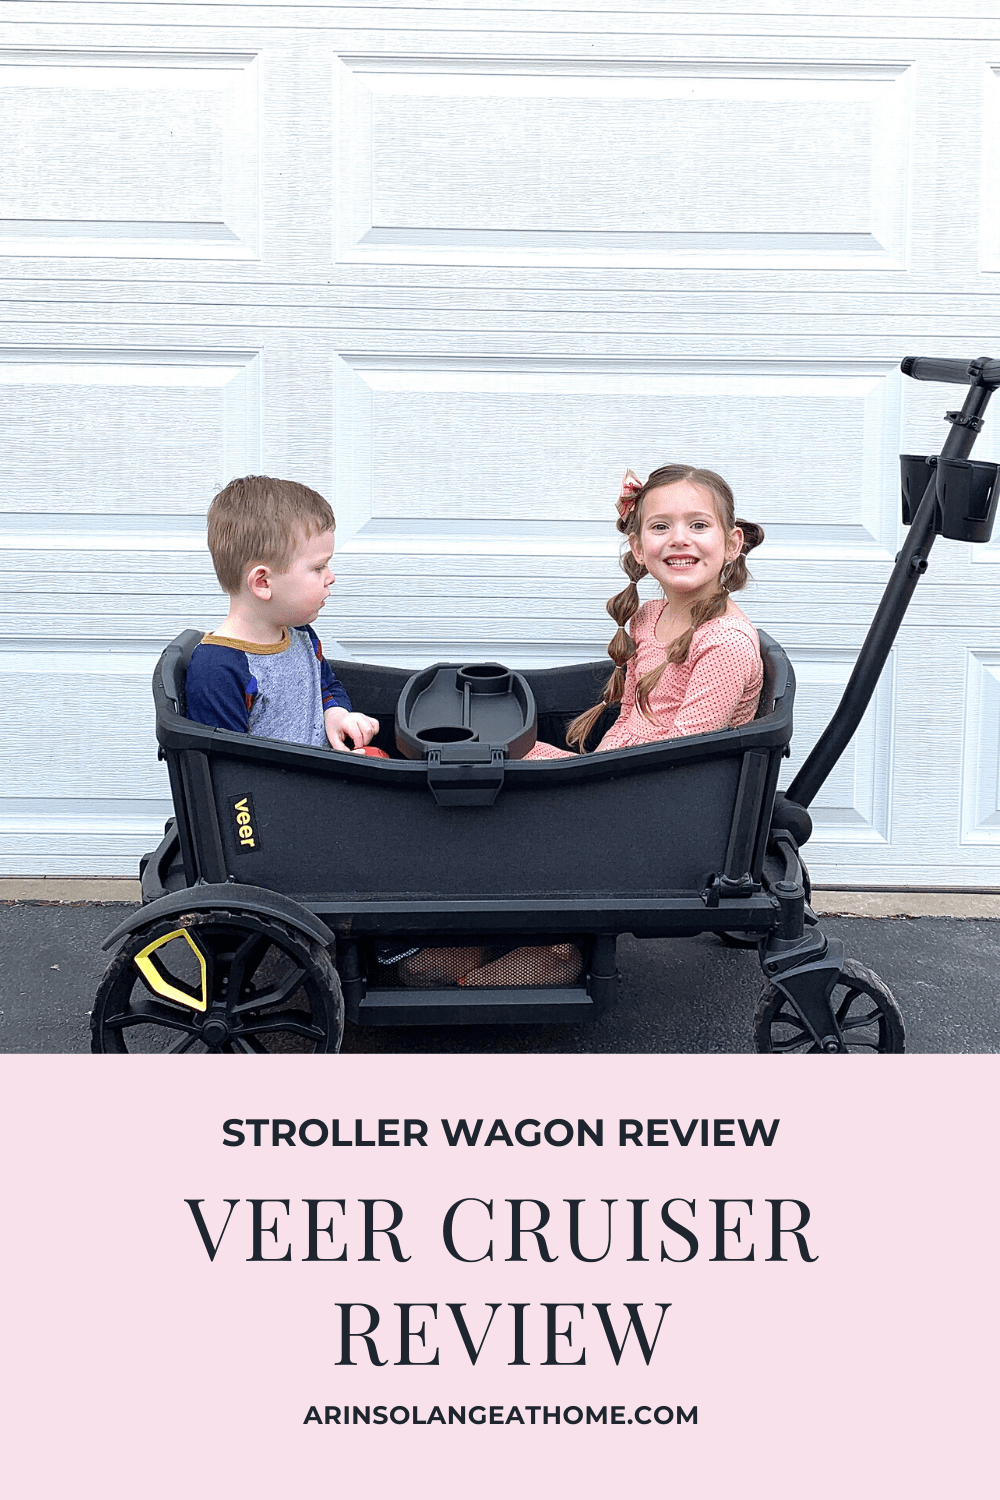 Veer Cruiser wagon review